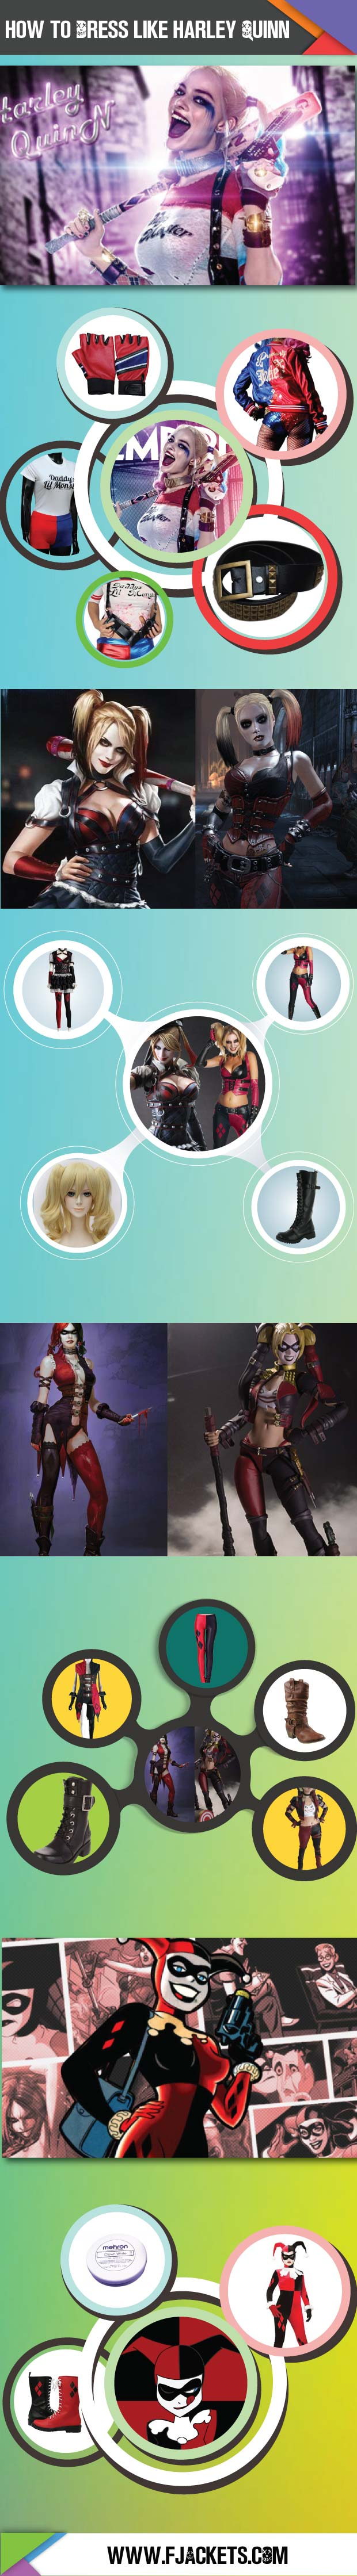 Complete Harley Quinn Costume Infographic